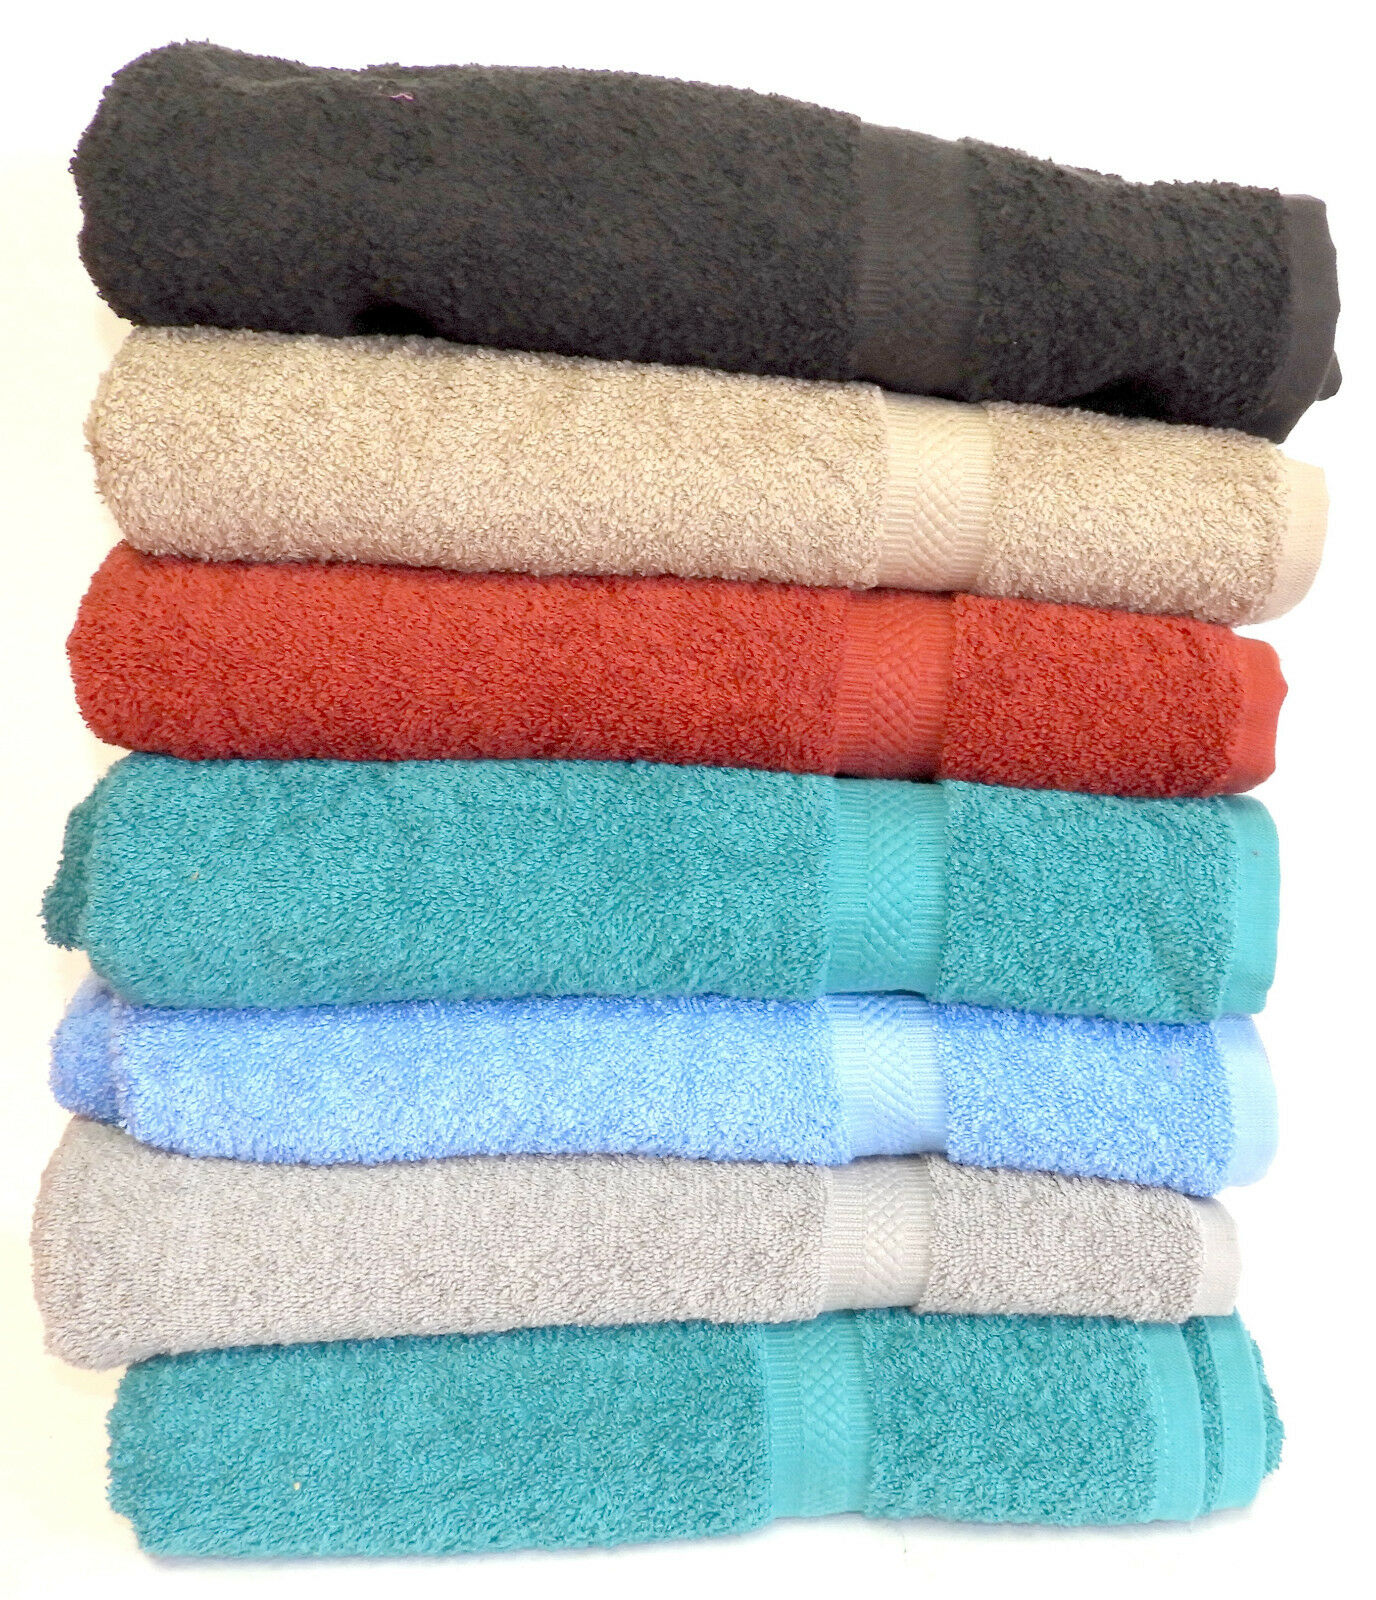 "6-Pack: 30"" x 54"" 100% Cotton Extra-Absorbent Bath Towels"